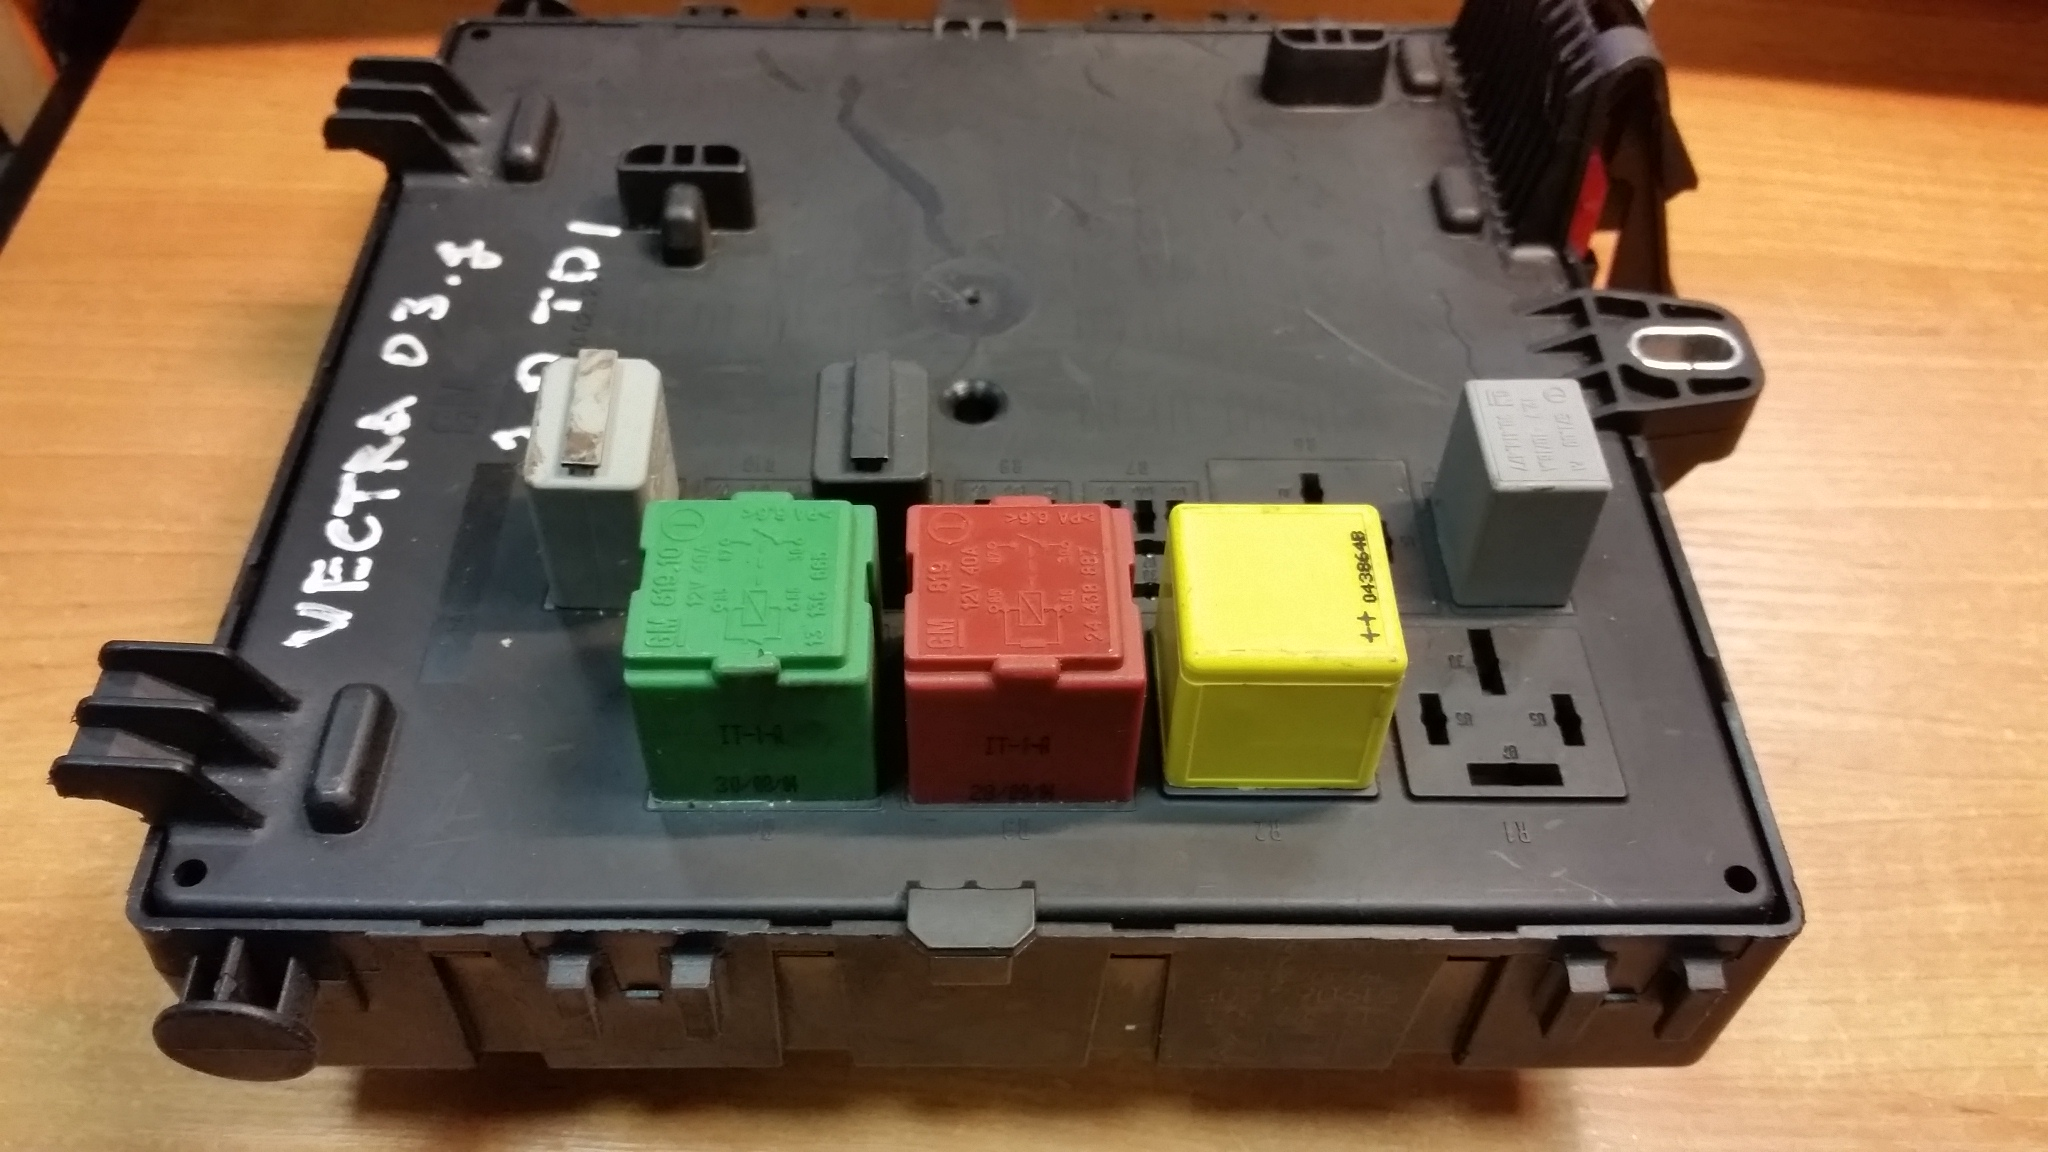 Vauxhall Vectra C Rear Fuse Box Start Building A Wiring Diagram Astra Rec Fusebox 13189921 Er Usedecus Com Rh Opel 1995 B